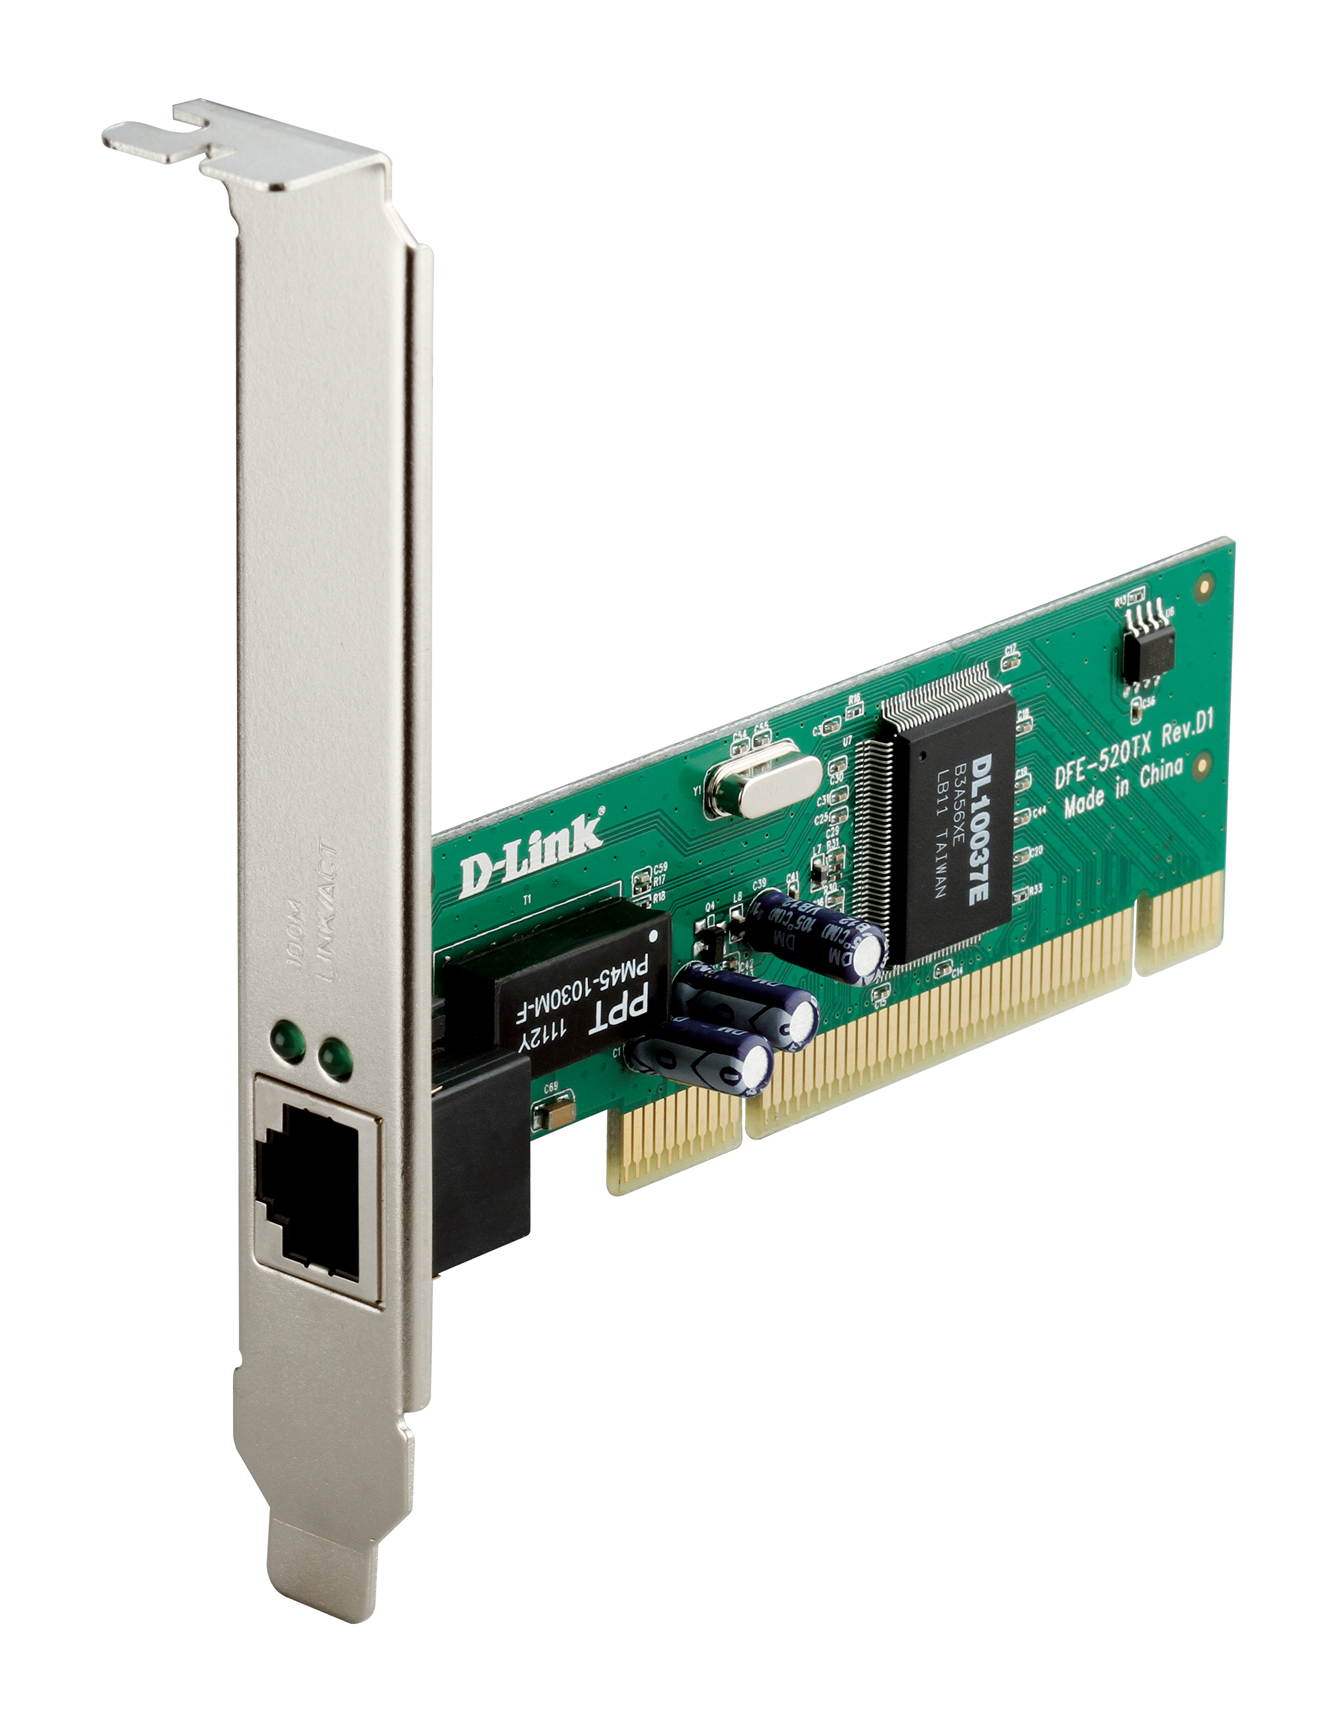 DFE-520TX NETWORK CARD WINDOWS 8 DRIVER DOWNLOAD